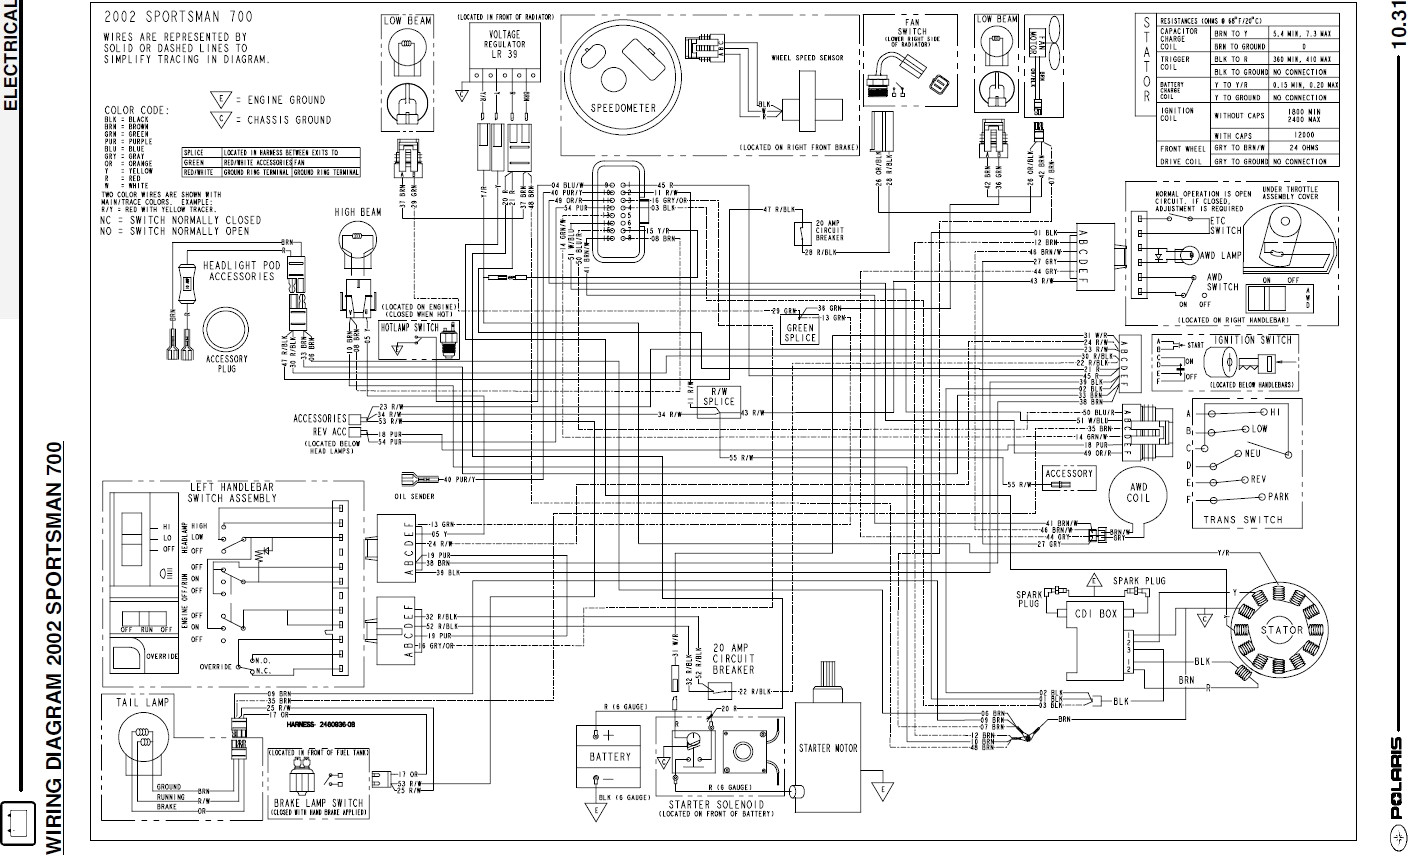 polaris fuel pump diagram 08 f350 fuel pump diagram polaris ranger fuel pump wiring diagram collection #13